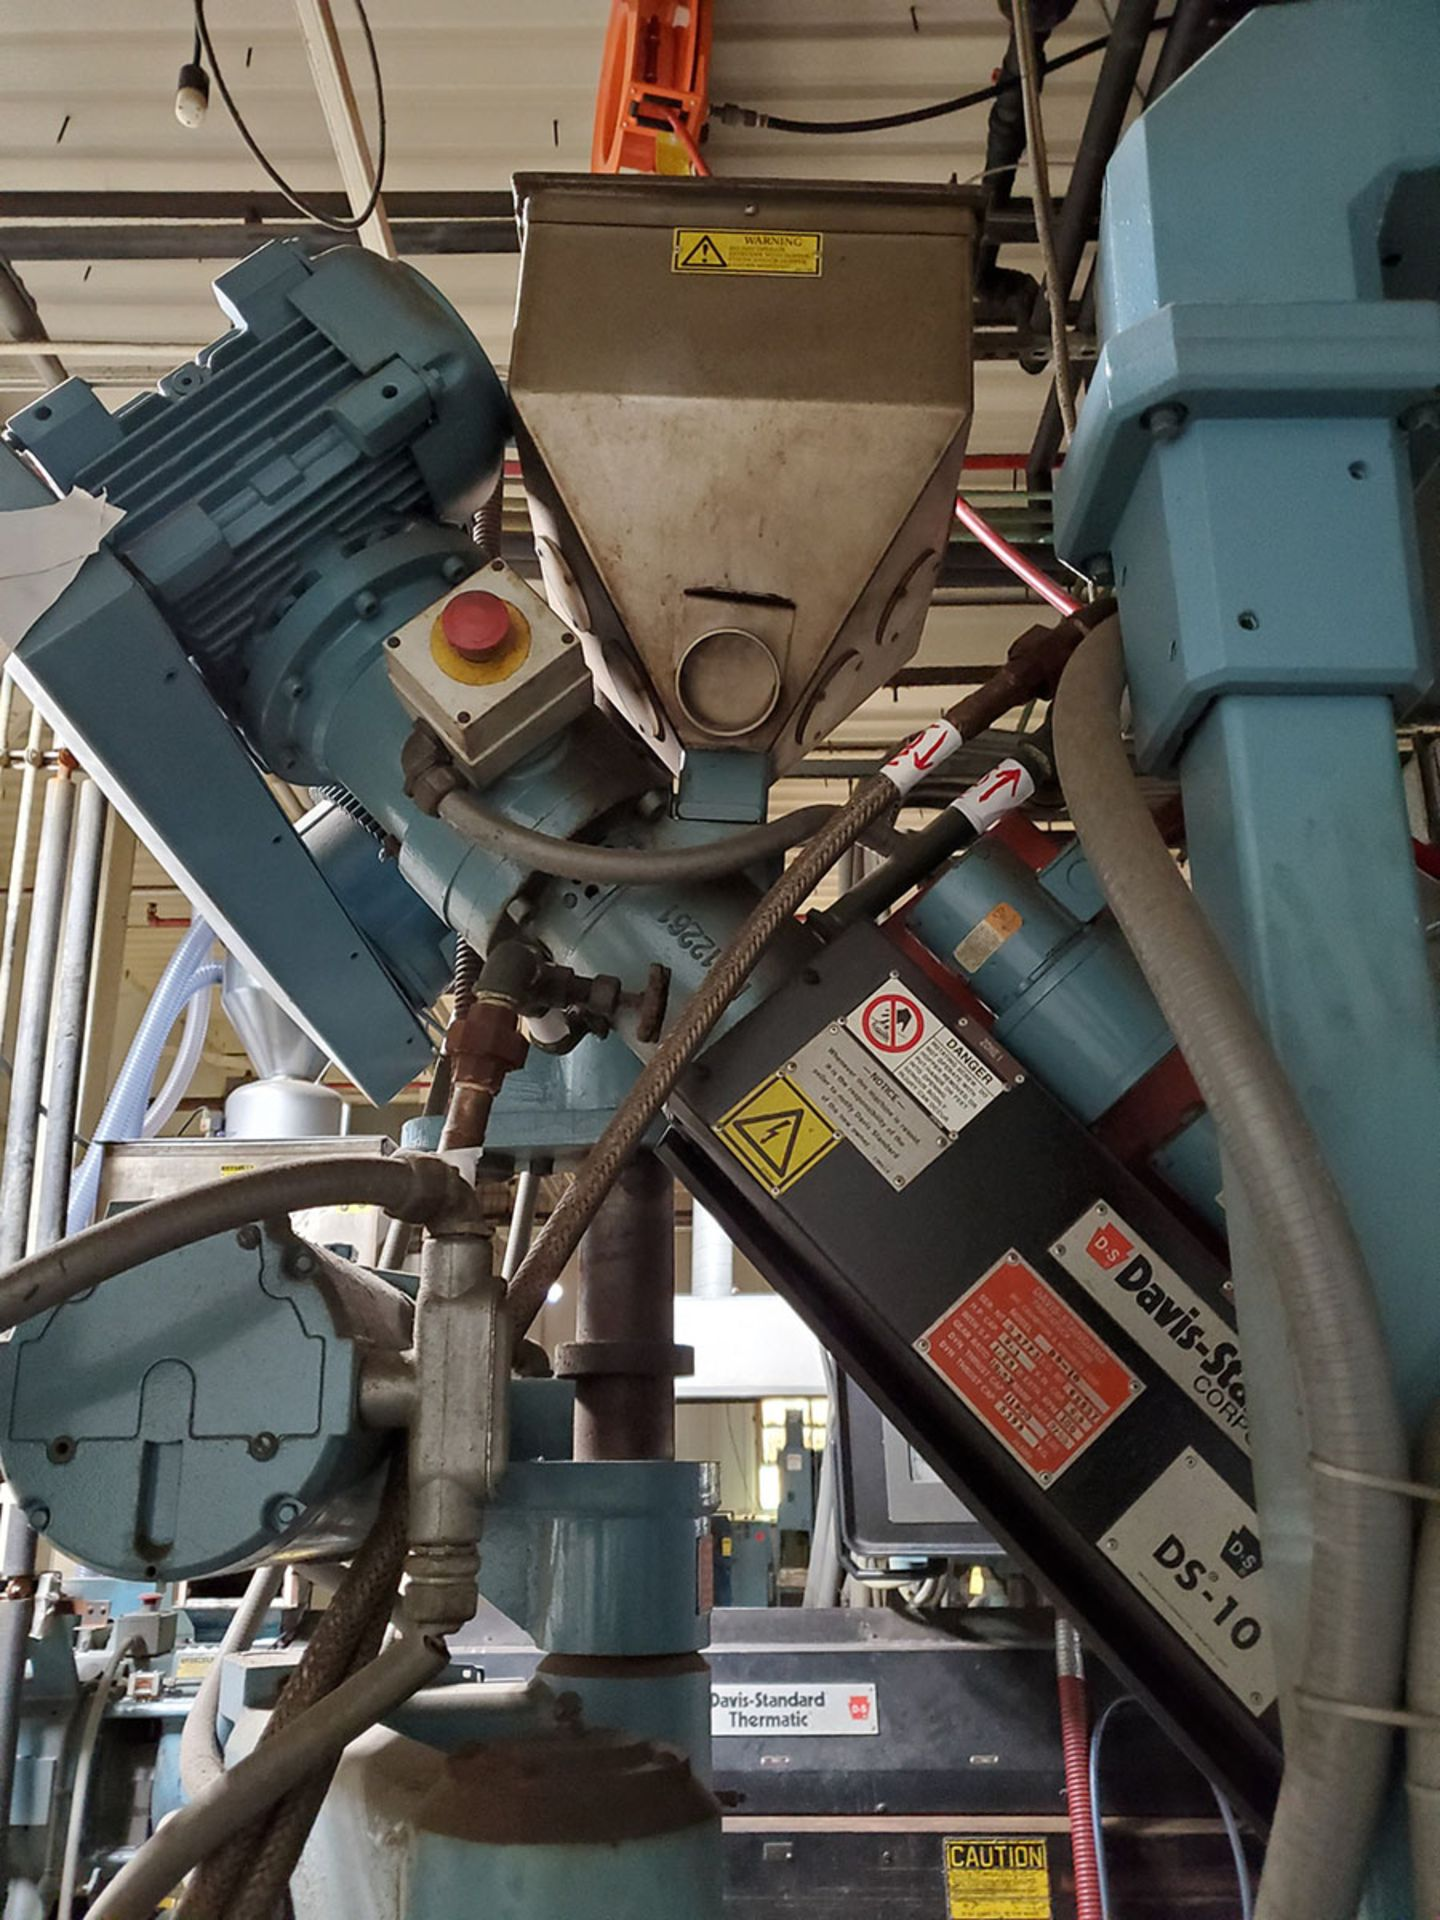 Lot 175 - DAVIS STANDARD THERMATIC PLASTIC CO-EXTRUDER; MODEL DS-10, S/N 0-5773